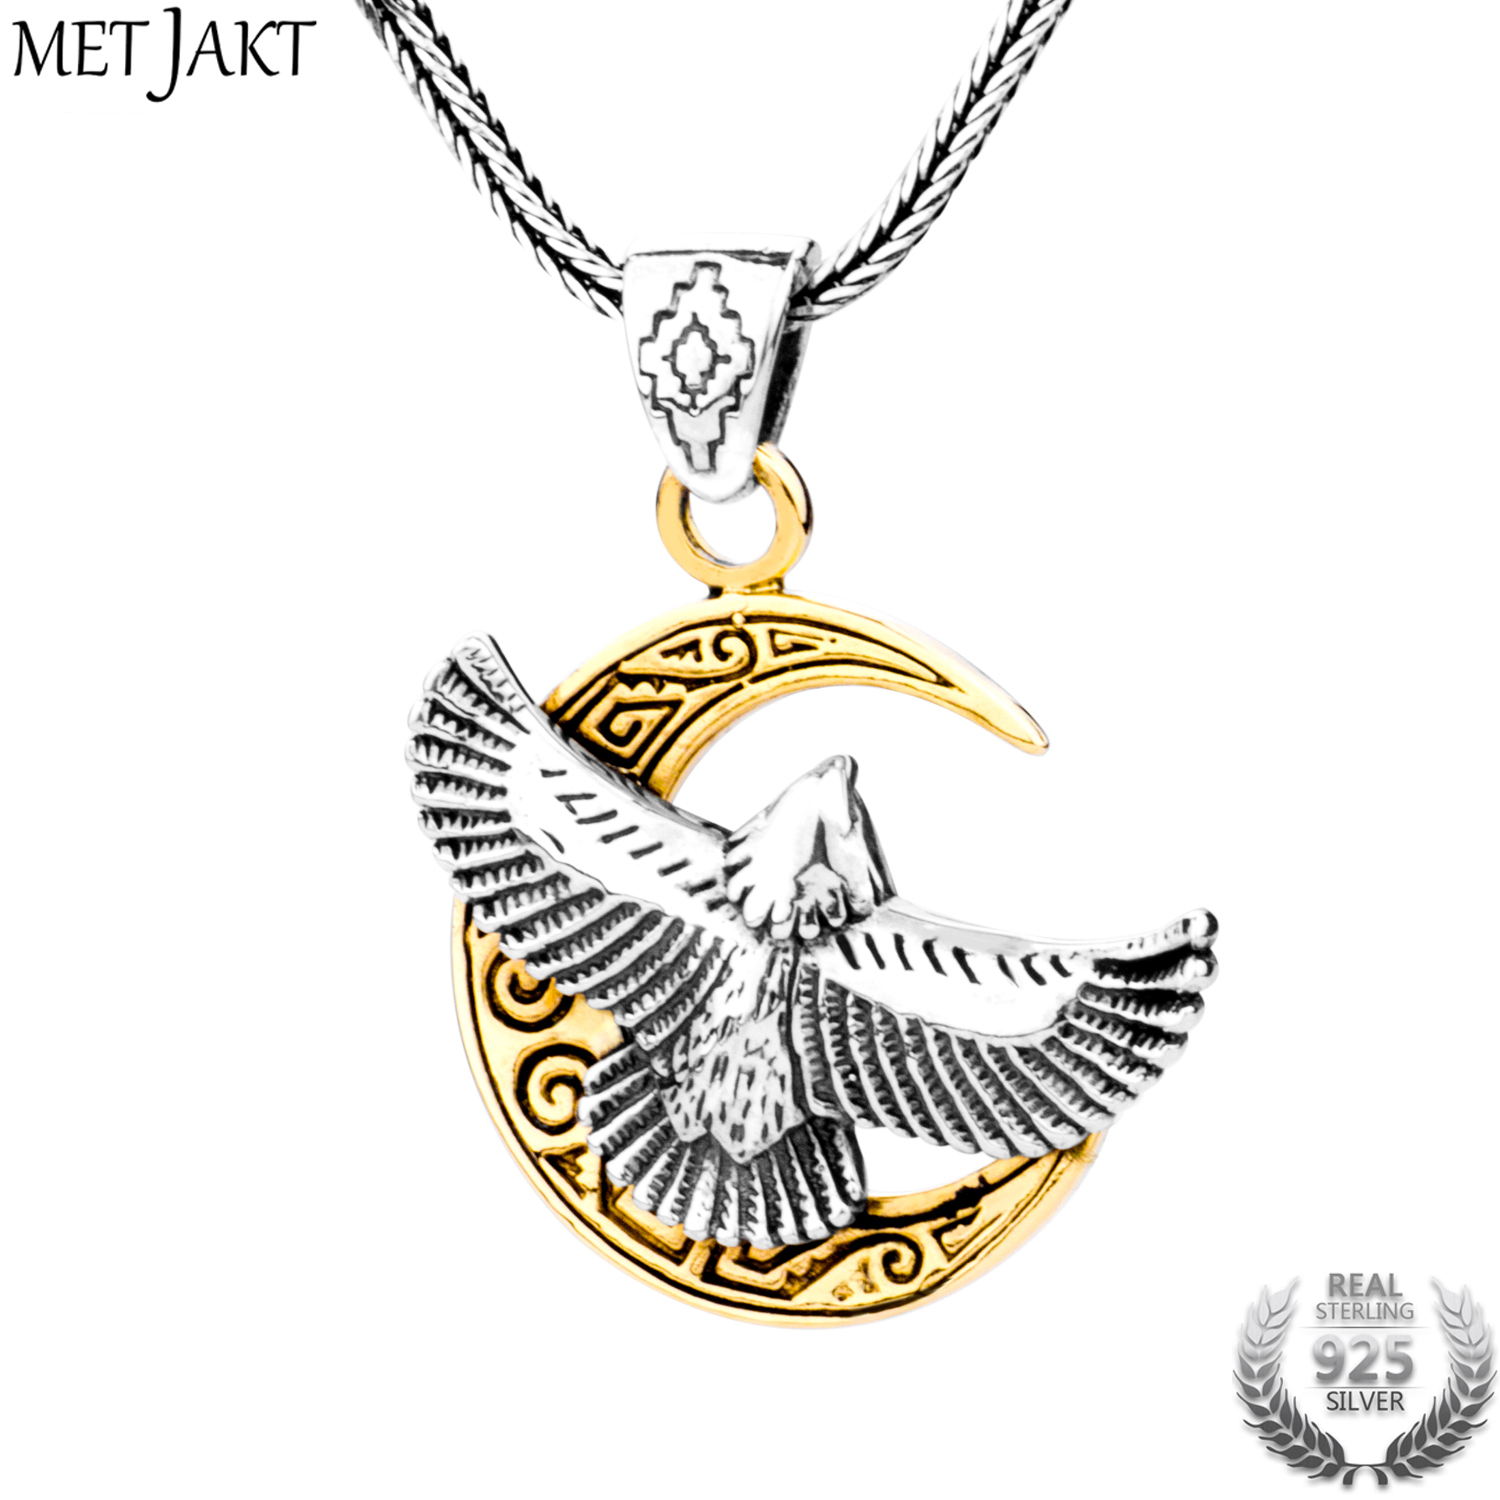 MetJakt Punk Flying Eagle Golden Moon Pendant Necklace Solid 925 Sterling Silver and Snake Chain Men's Personalized Jewelry yldz001 fashionable moon shaped rhinestone inlaid pendant necklace golden transparent